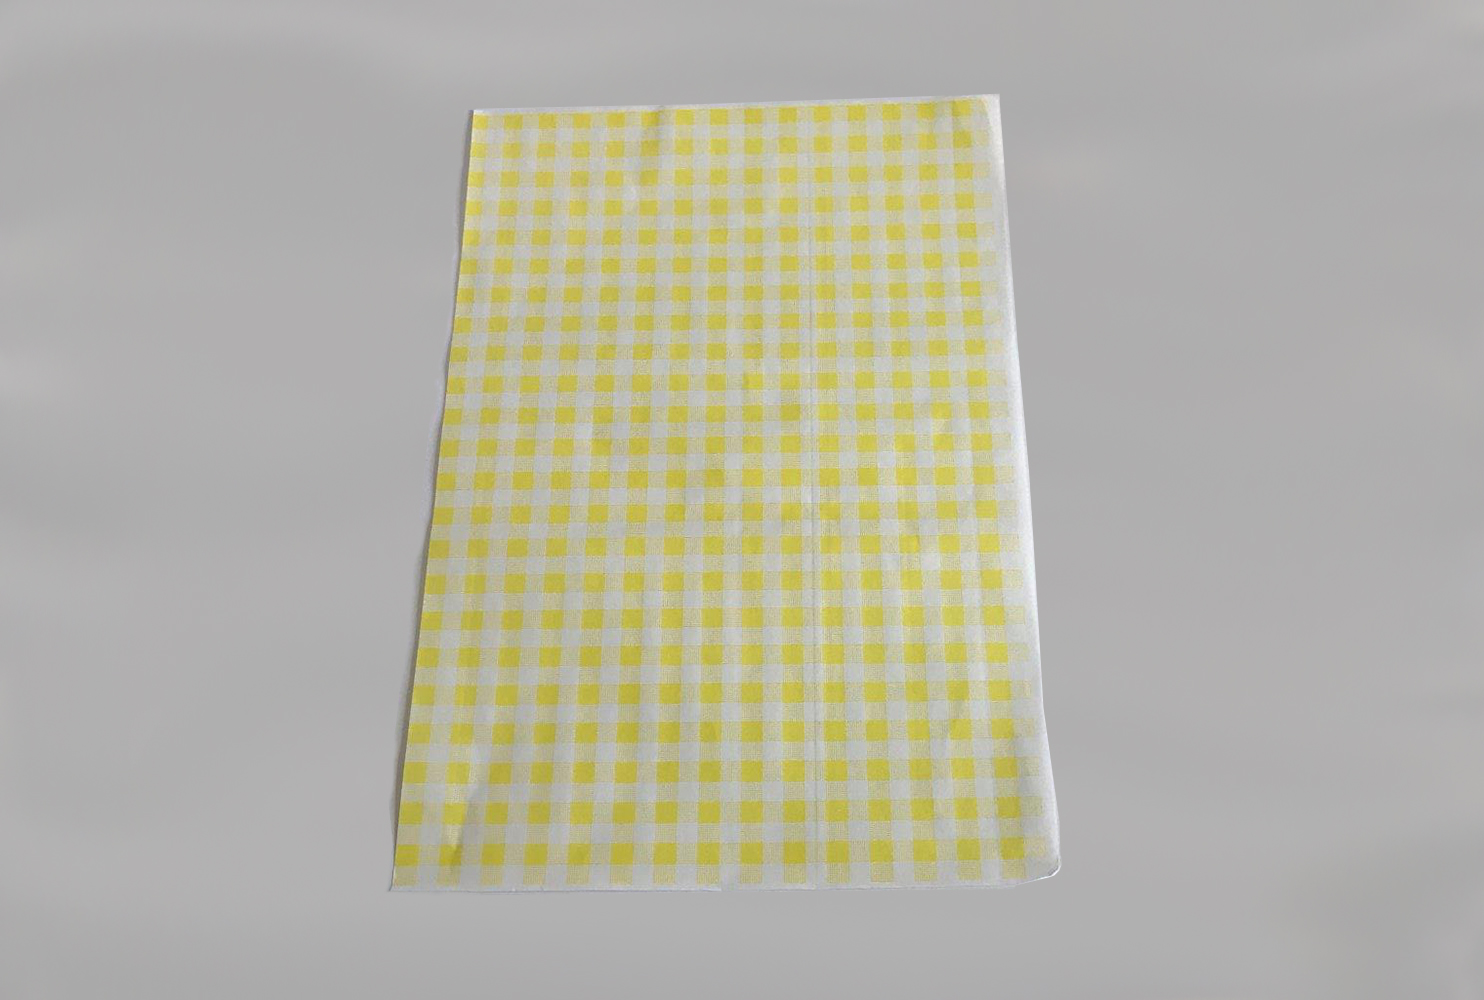 YELLOW GINGHAM SHEETS 250X380 50GSM